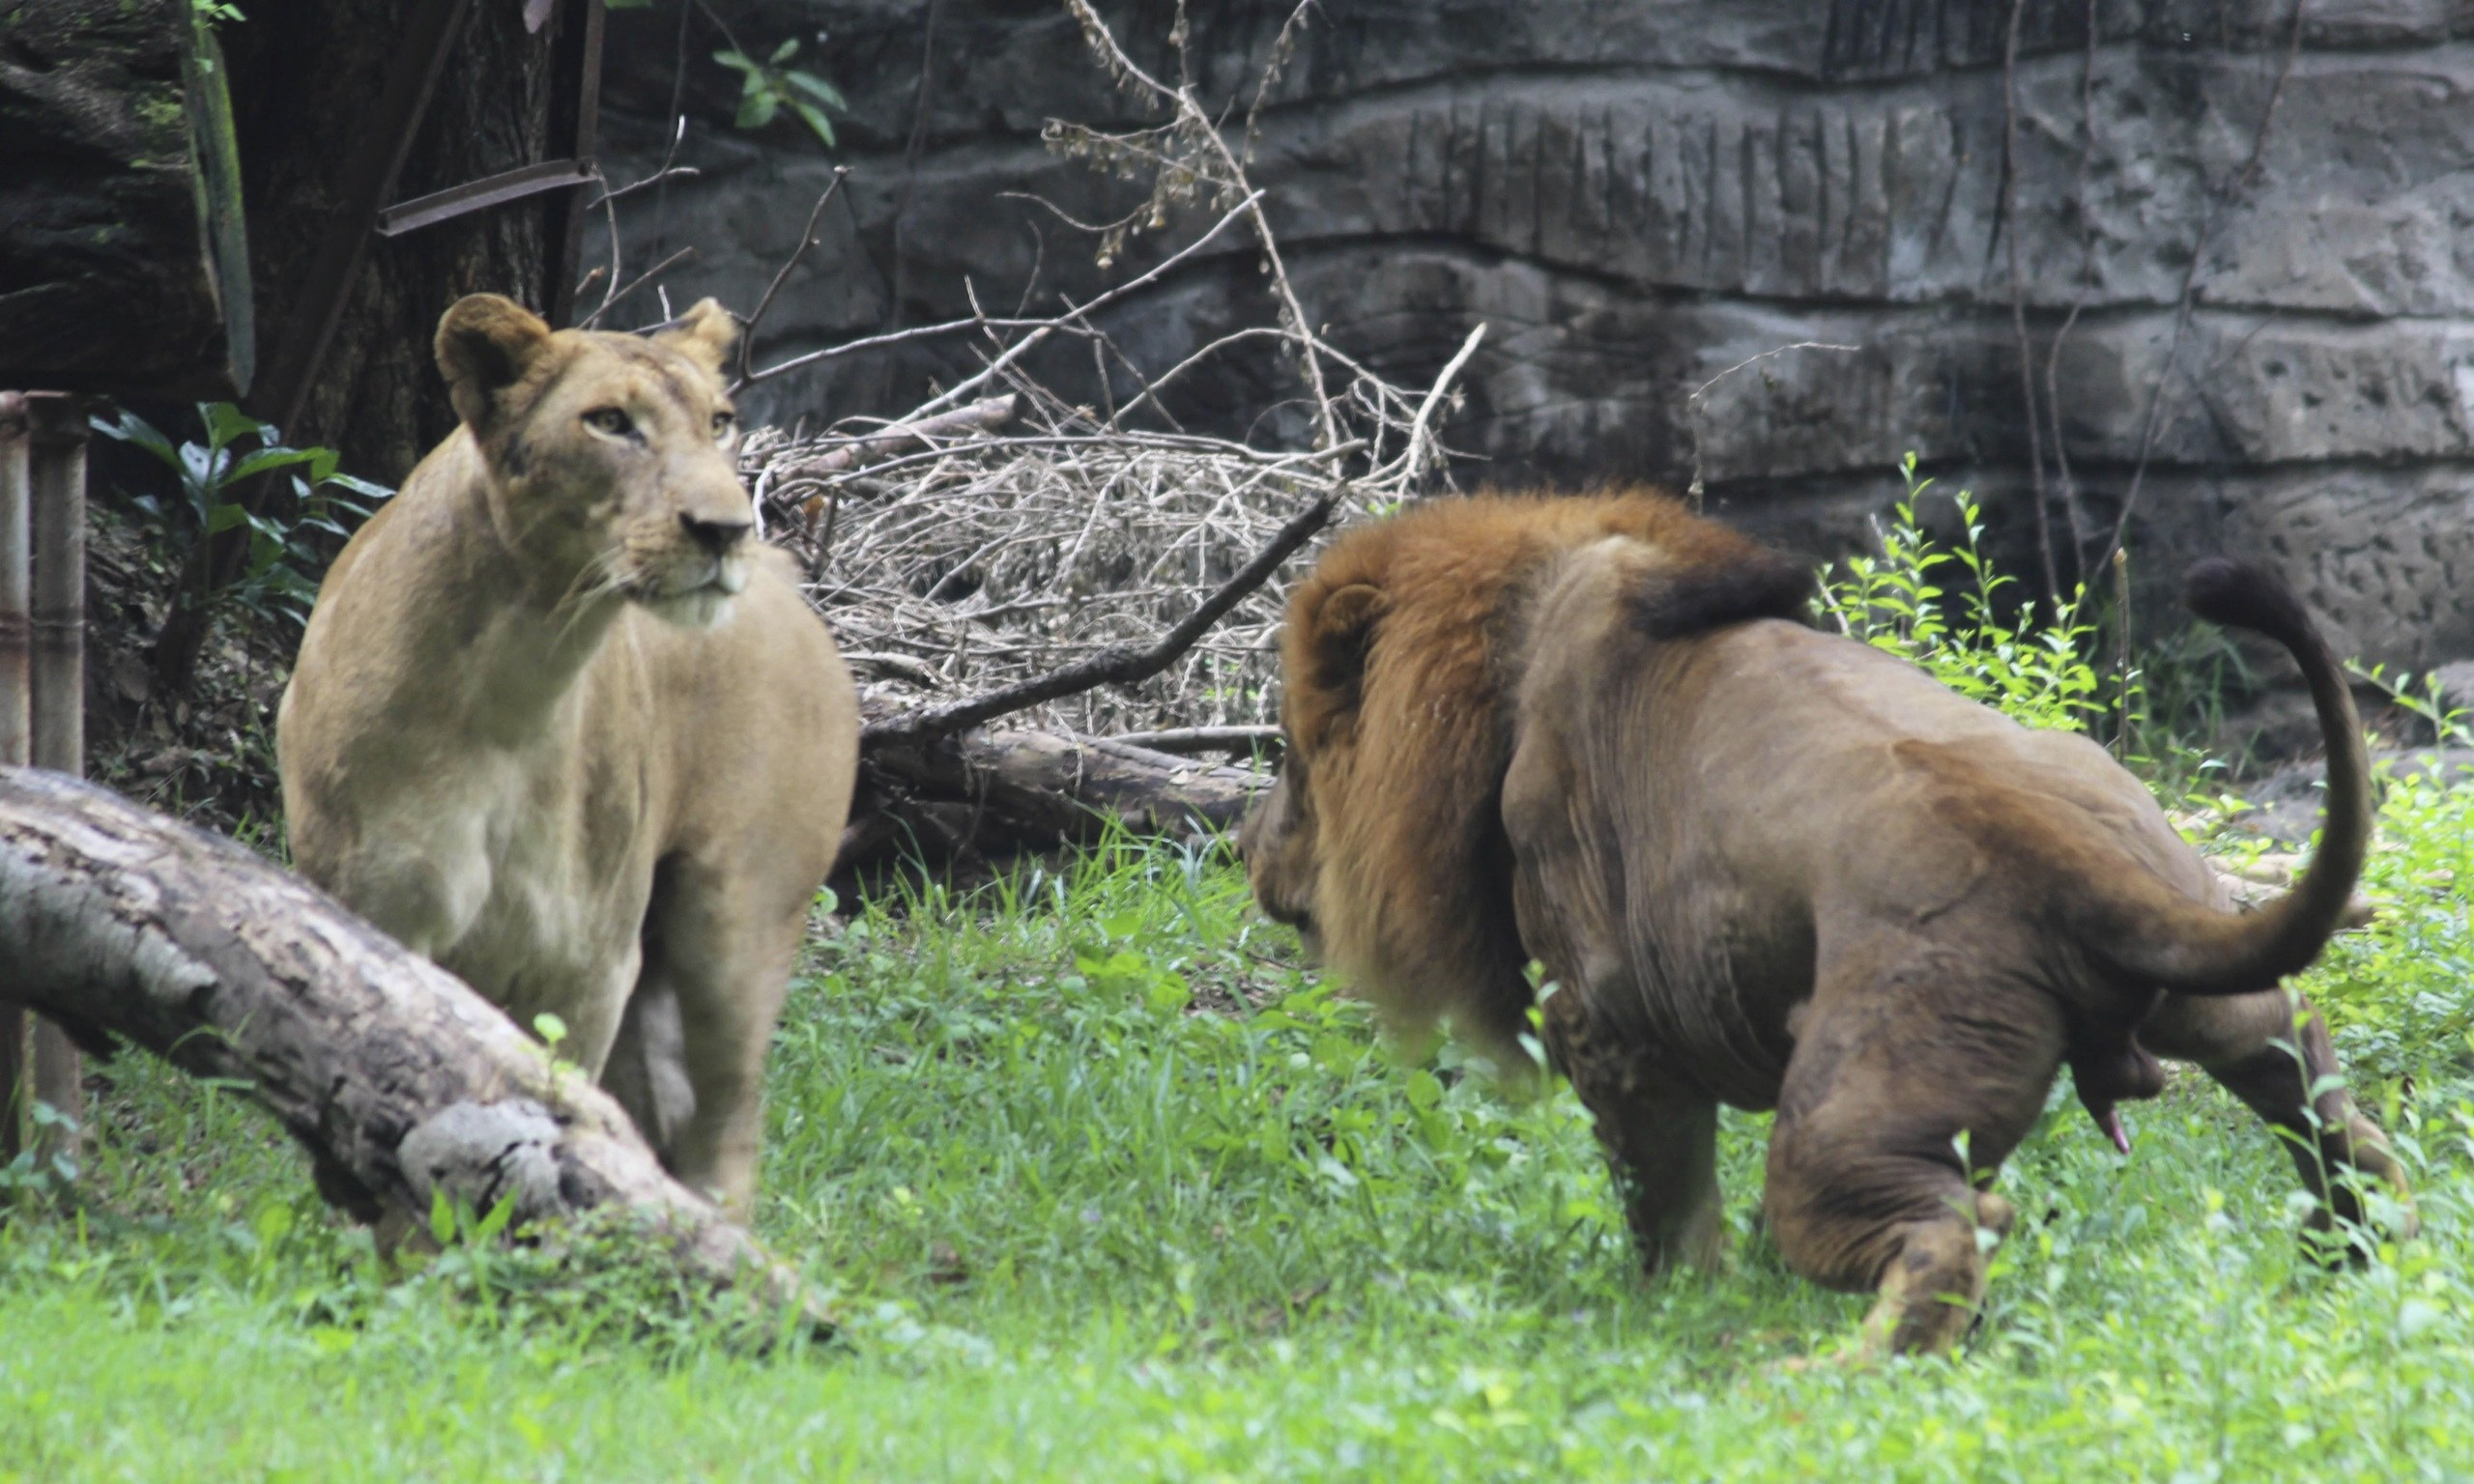 Lion found hanged in Indonesian zoo | World news | The ...